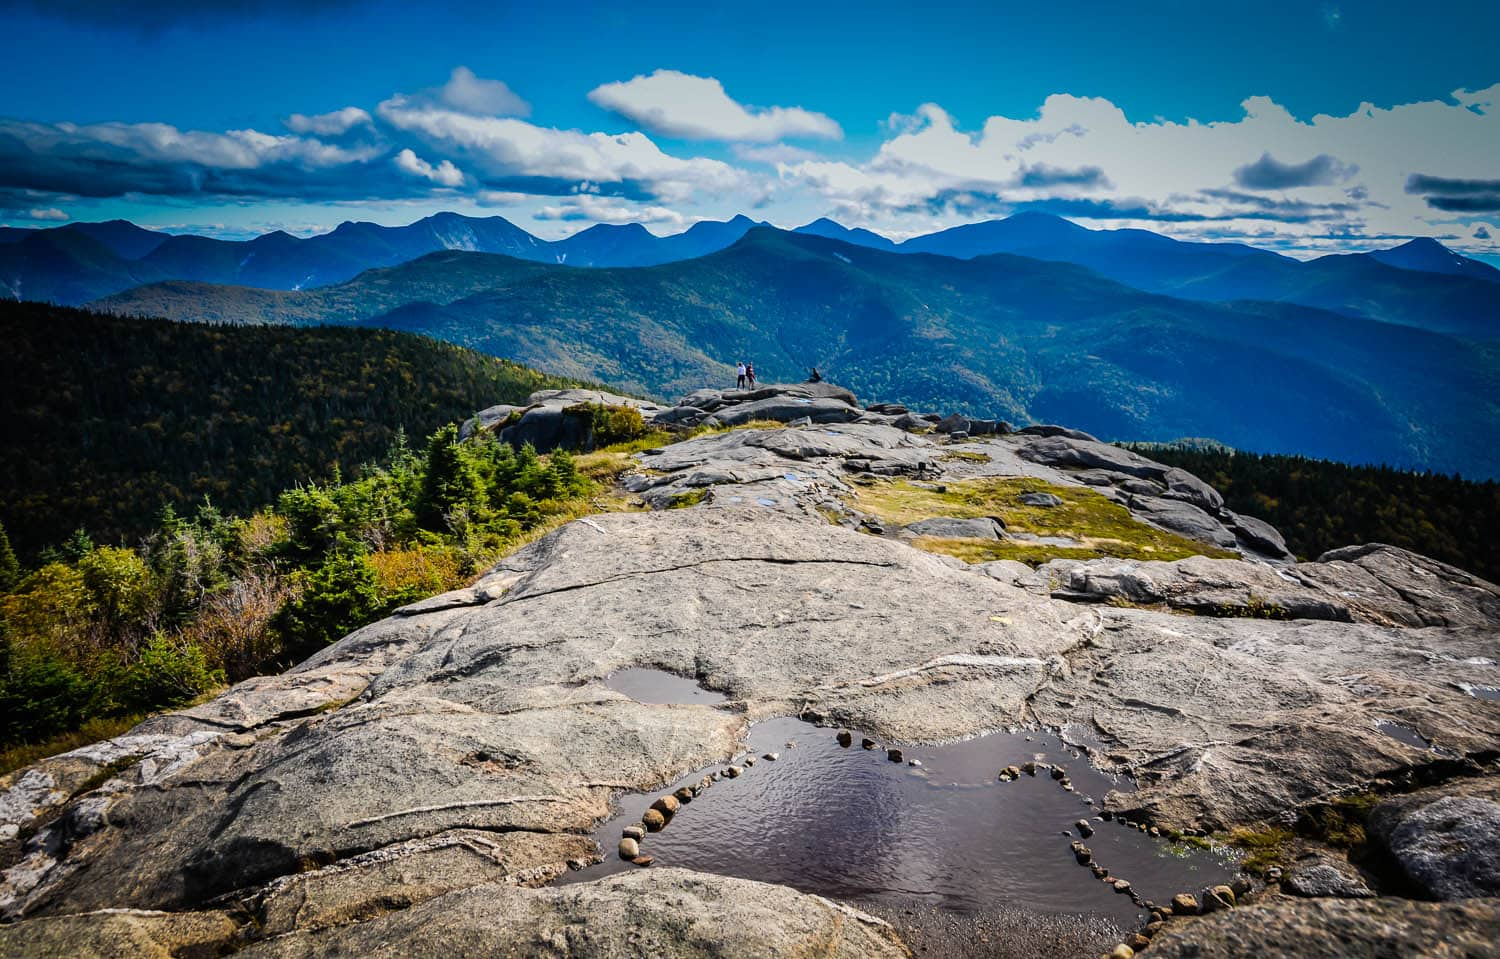 Peak Bagging Cascade Mountain, the Easiest of Adirondack High Peaks